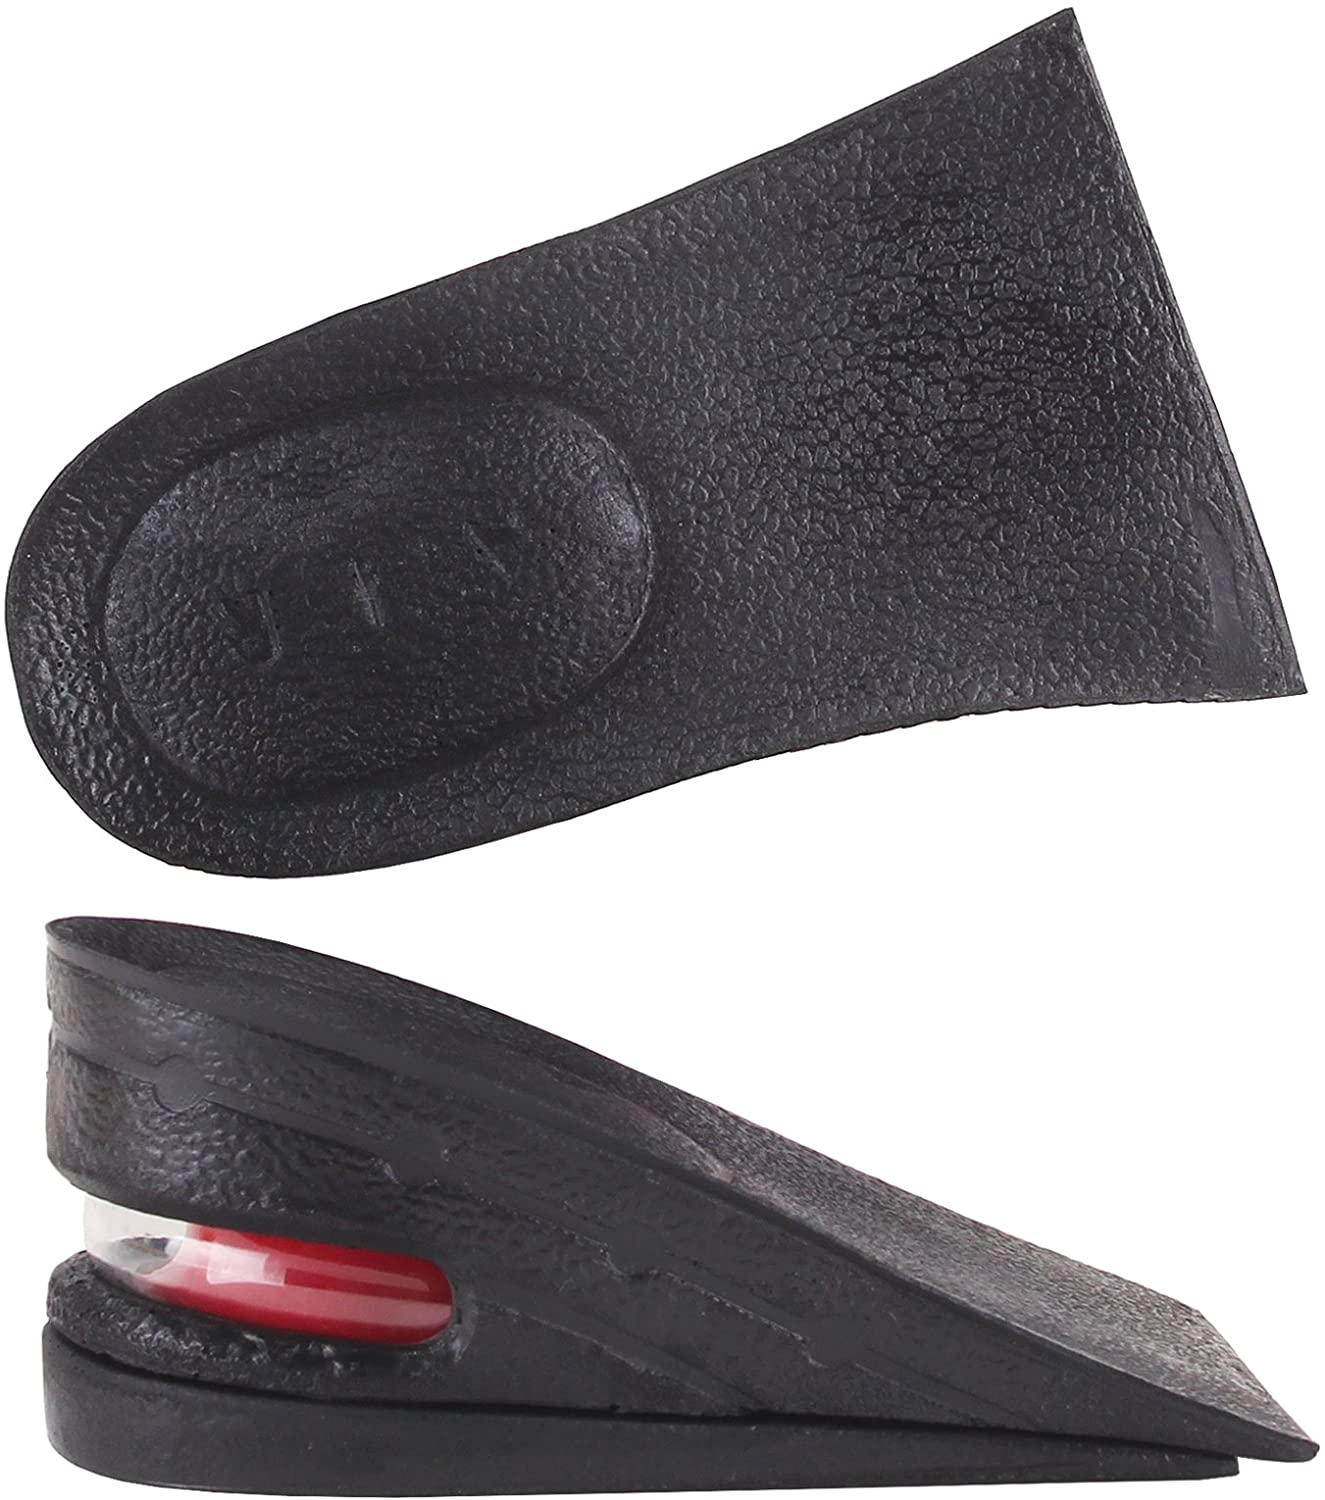 Y2C Unisex 2-Layer Height Increase Taller Half Air Insoles (Approx 2 inches) Black and Random Gift